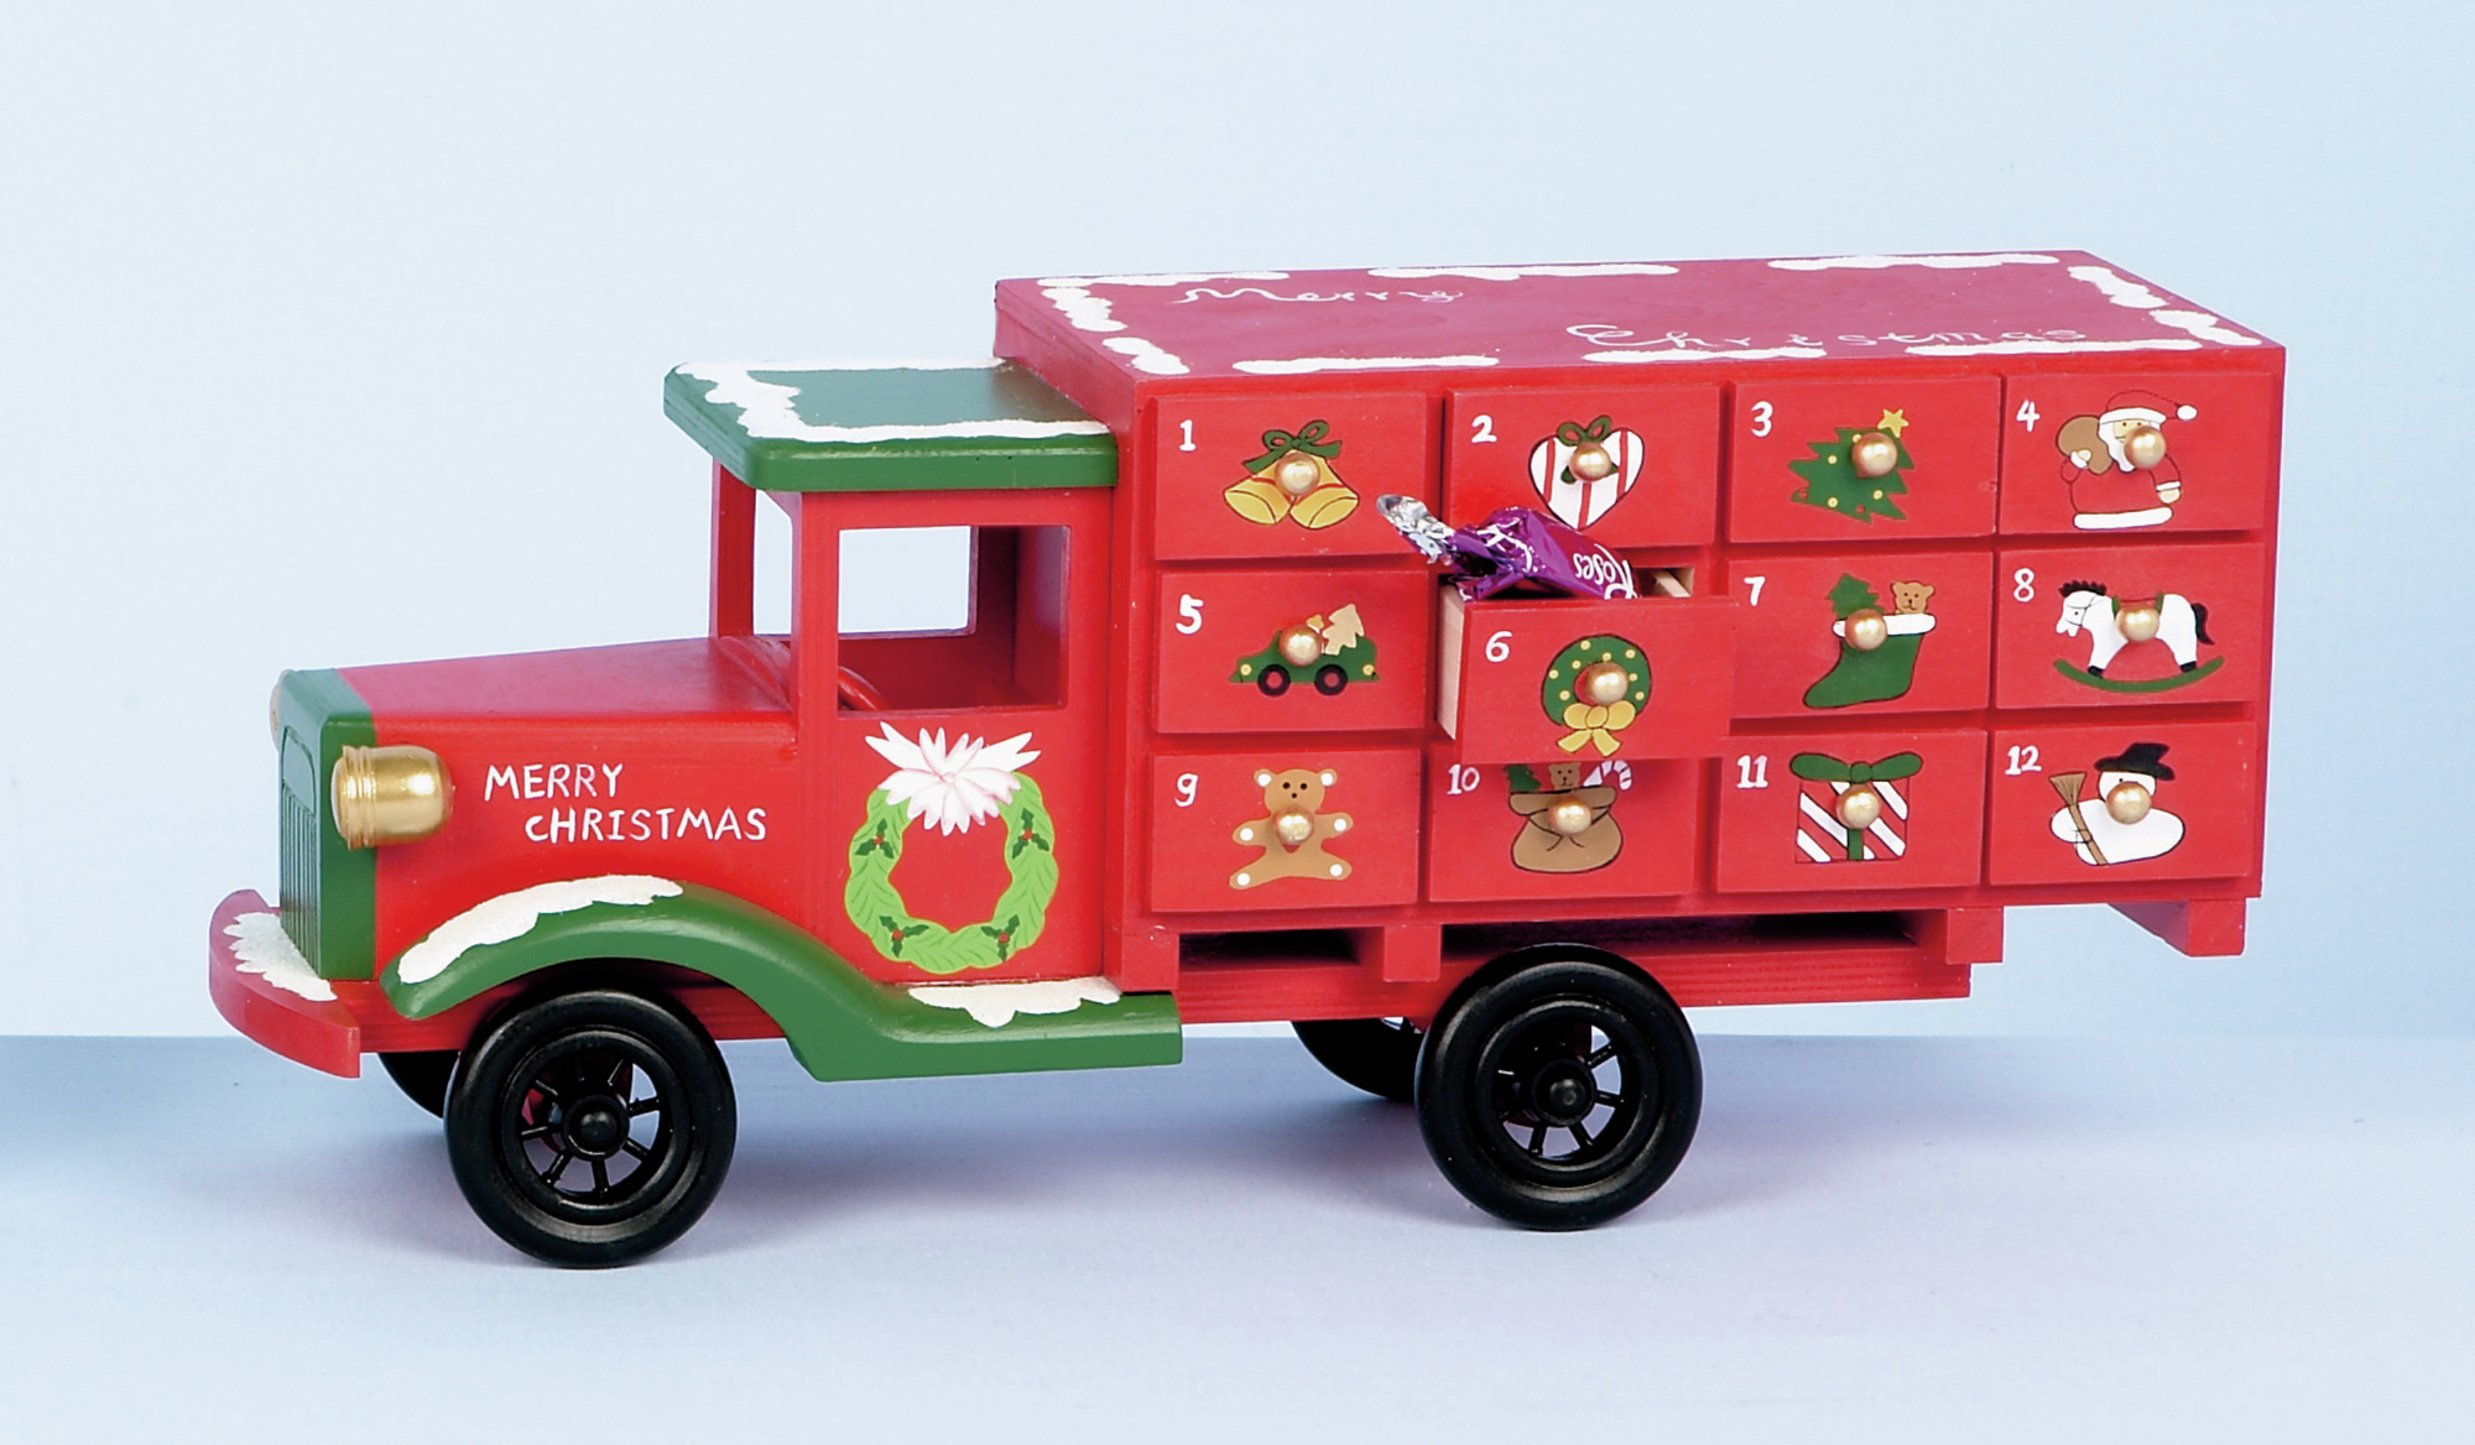 premier-decorations-36cm-wooden-advent-truck-red